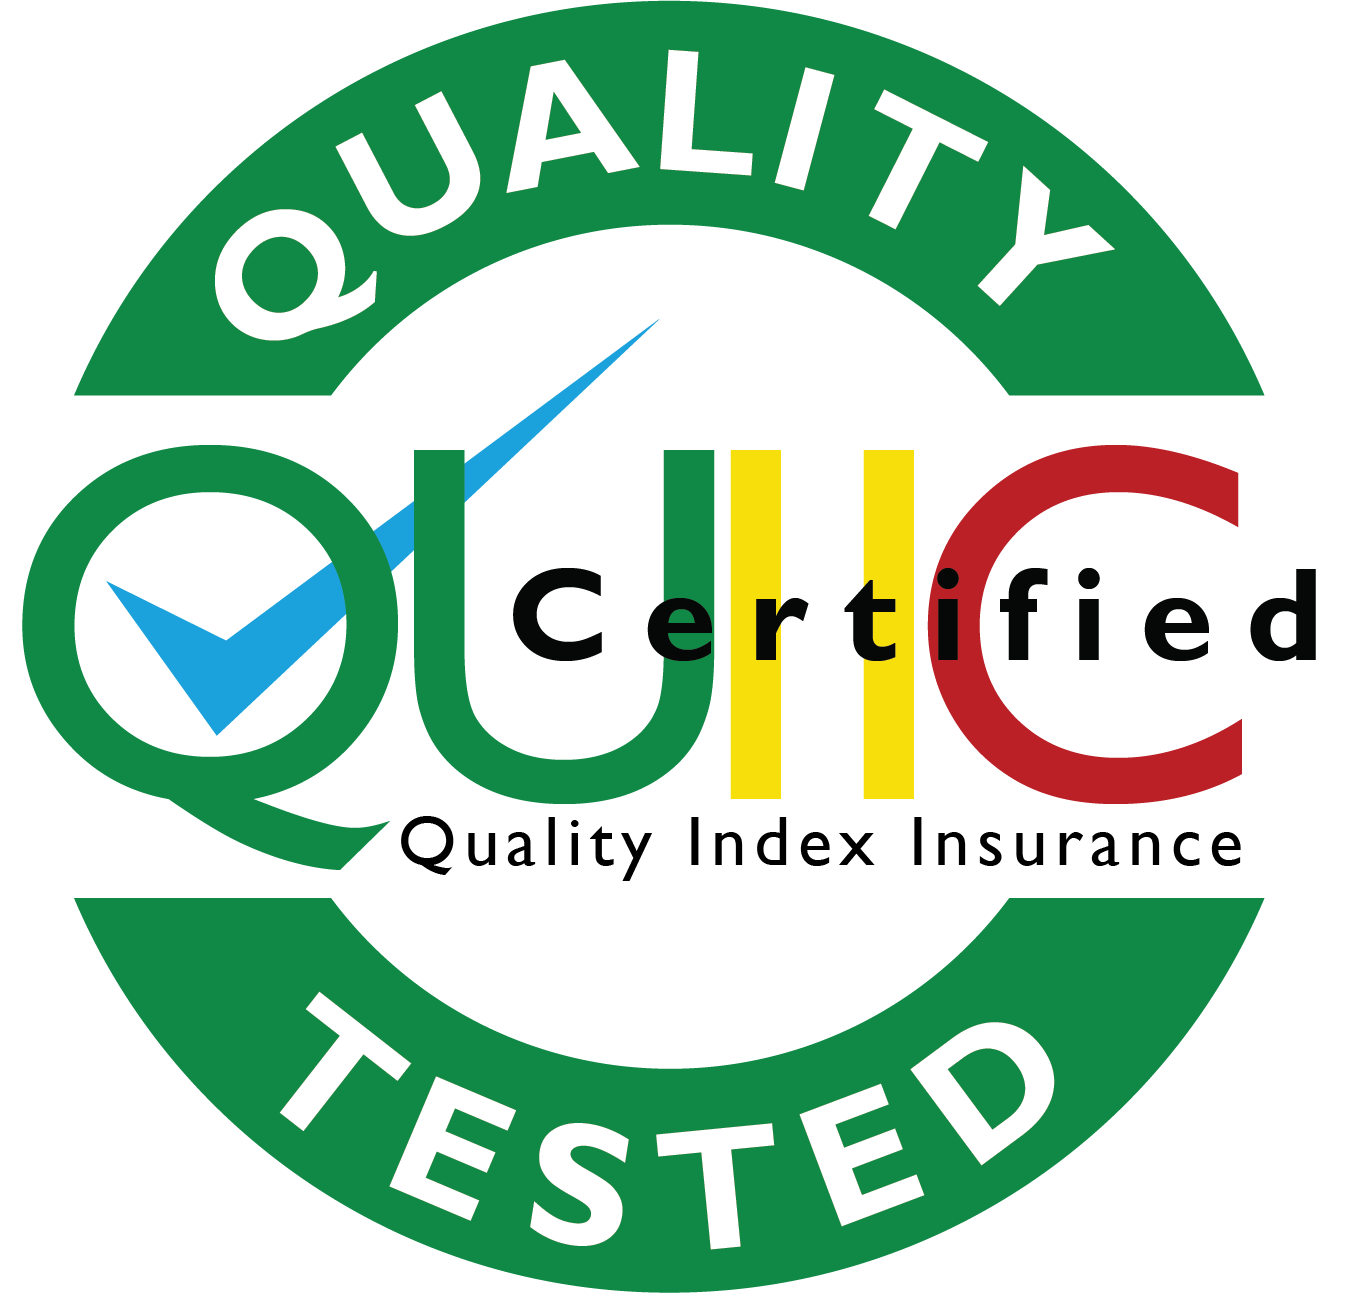 Quality Index Insurance Certification (QUIIC)